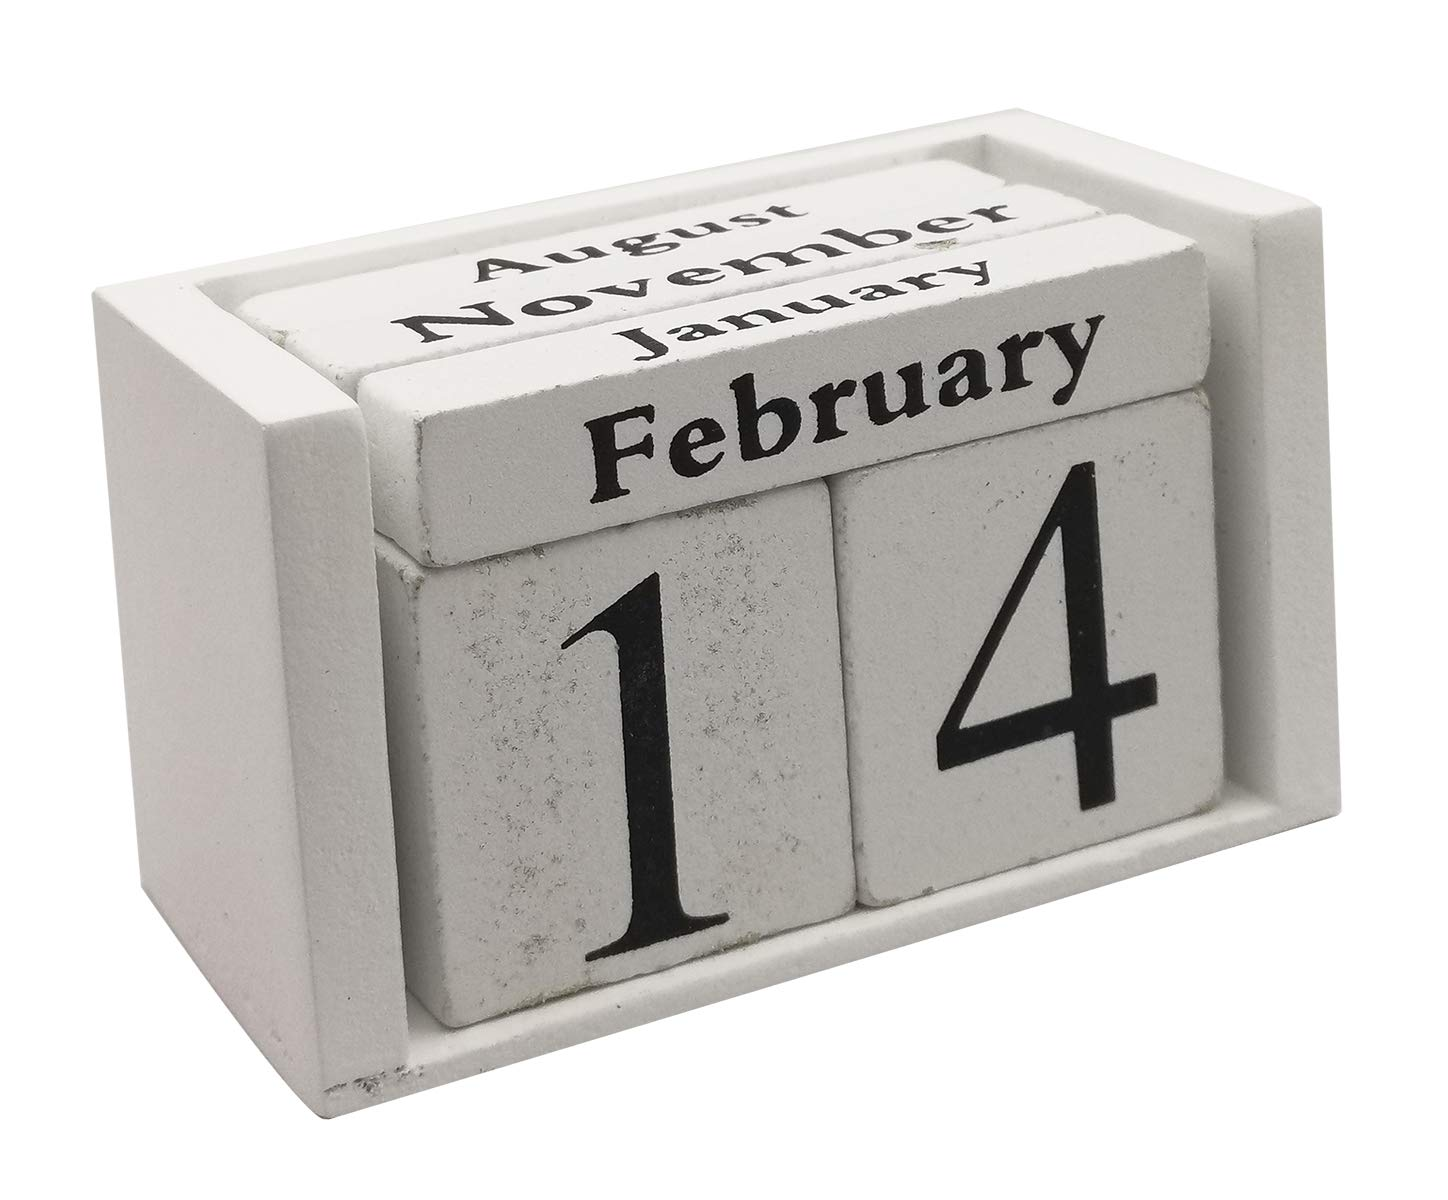 Wooden Desk Blocks Calendar - Perpetual Block Month Date Display Home Office Decoration(White), 3.7 x 2.1 x 1.7 inches